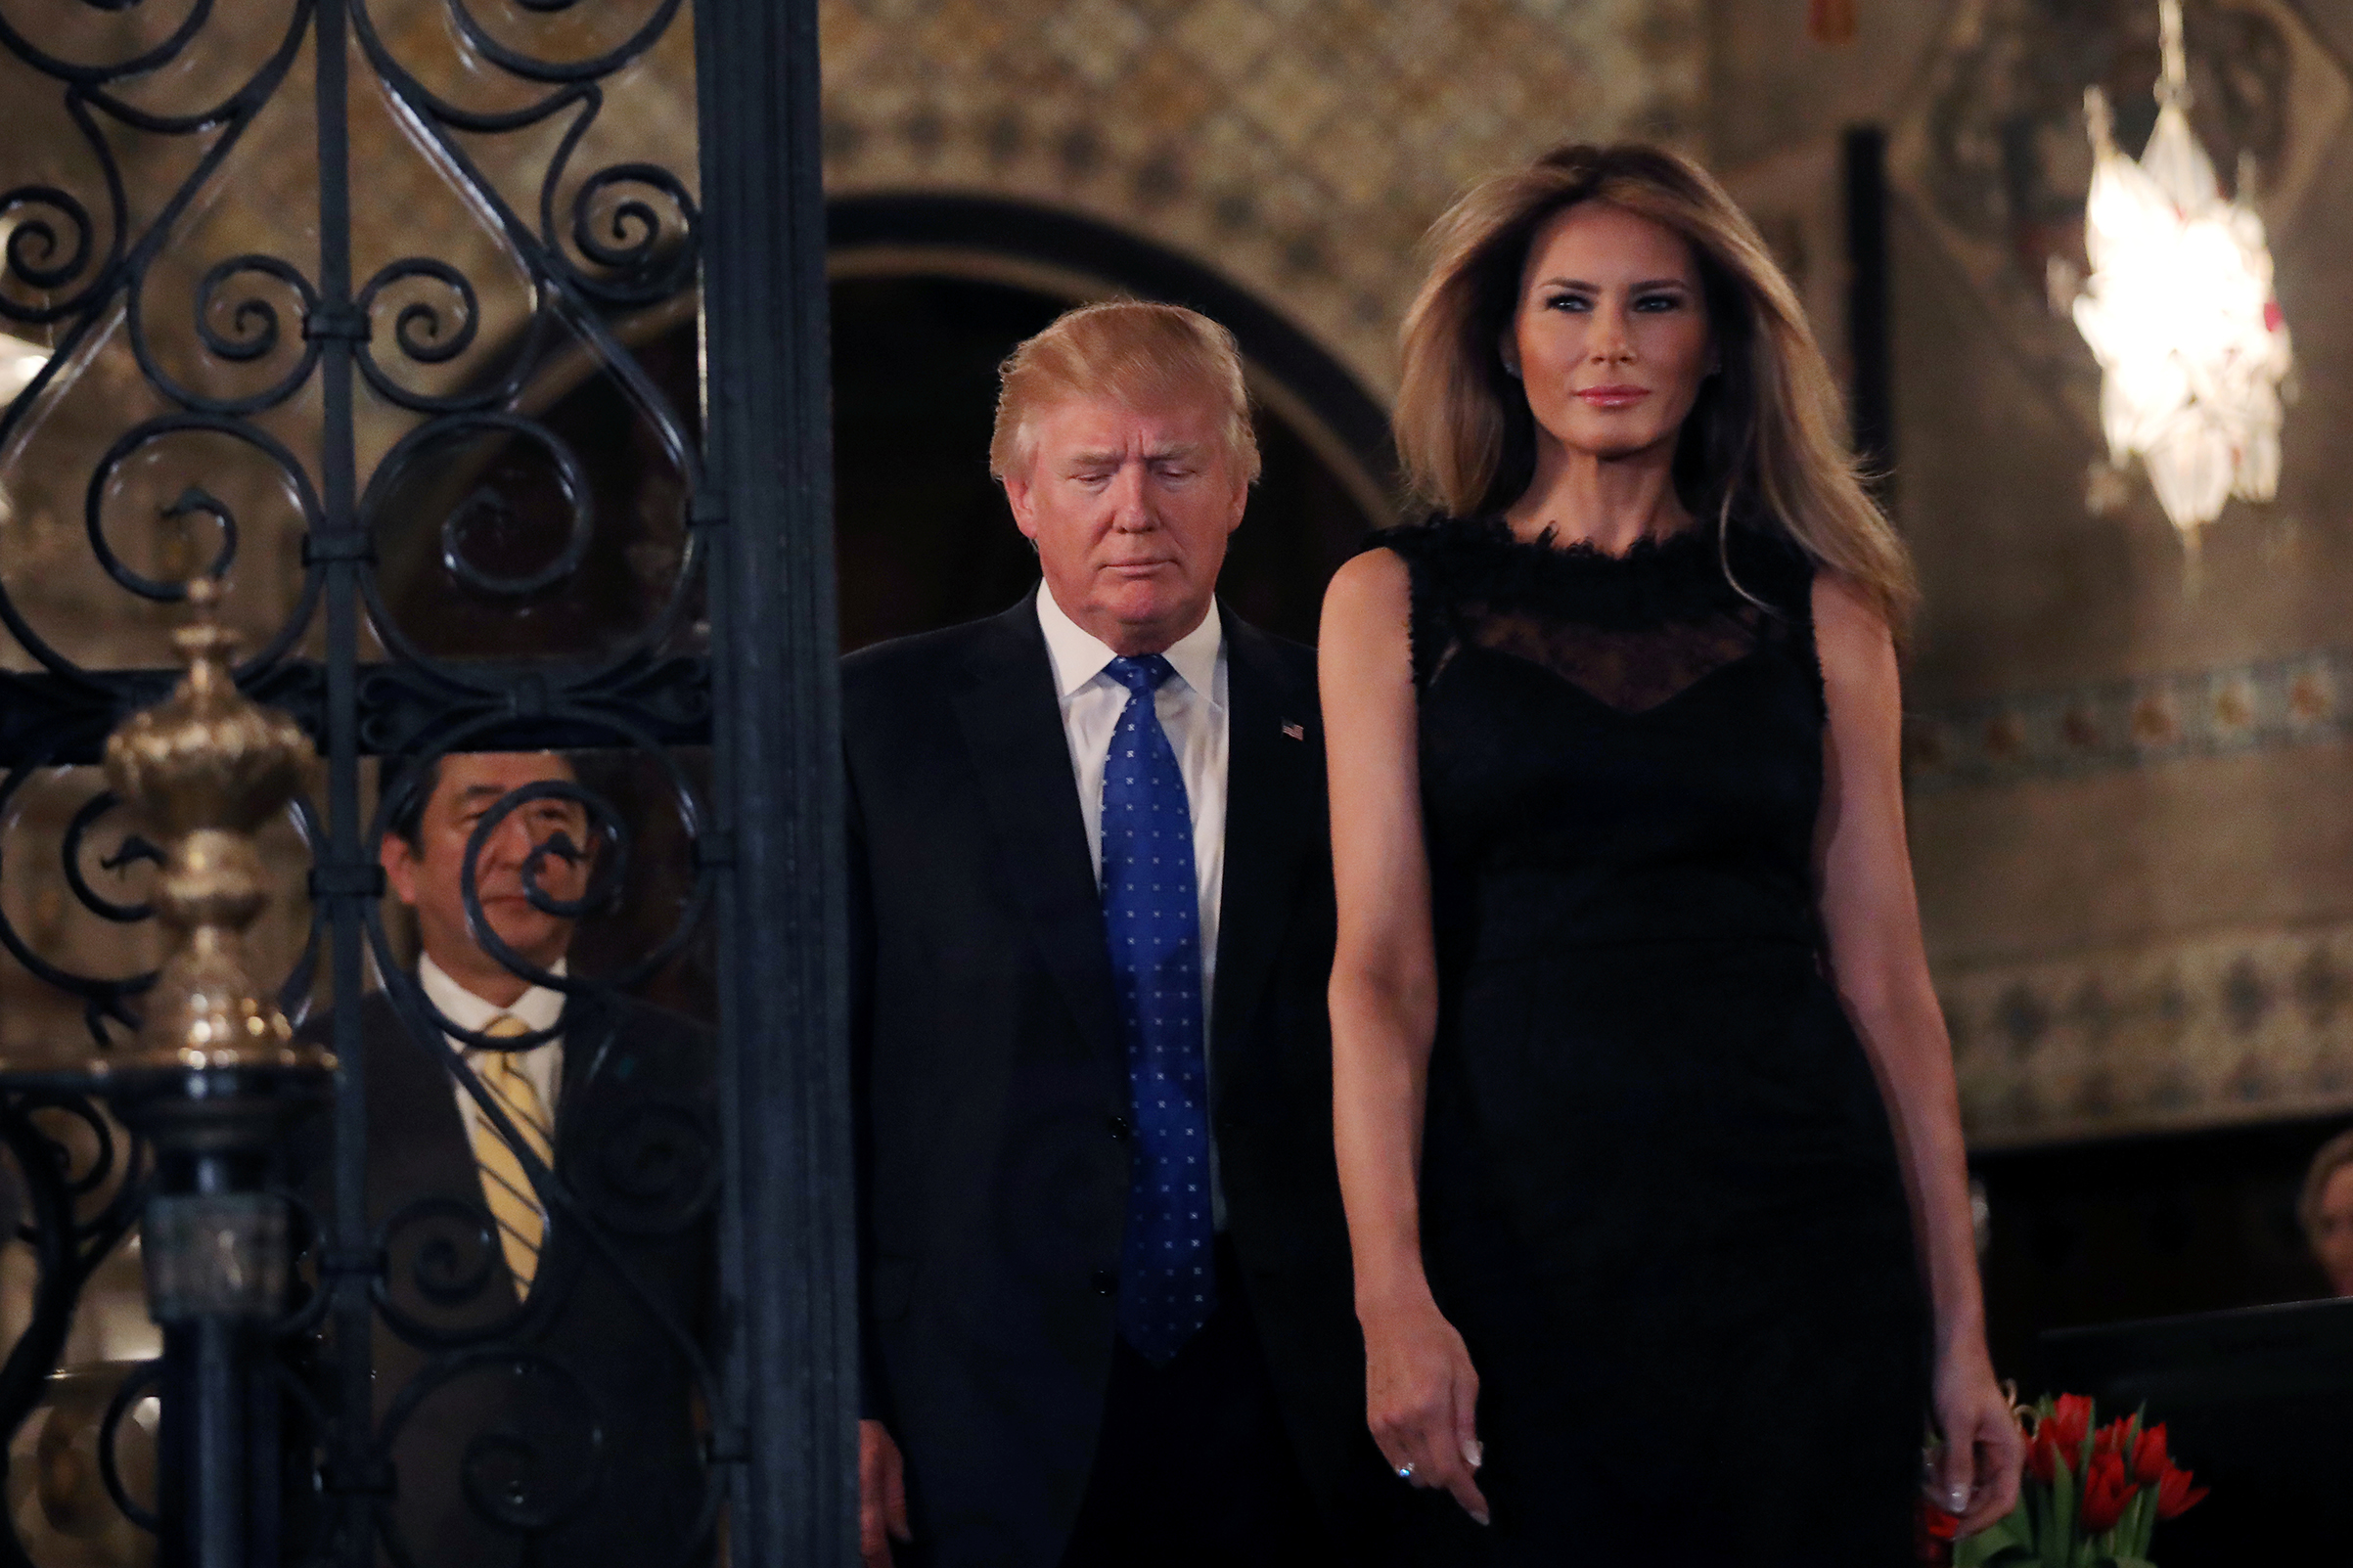 President Donald Trump with first lady Melania wearing a sleeveless black dress with a low-dipping back and a layer of lace on top, walk to pose for a photograph with Japanese Prime Minister Shinzo Abe before attending dinner at Mar-a-Lago Club in Palm Beach, Fla., Feb. 11, 2017.